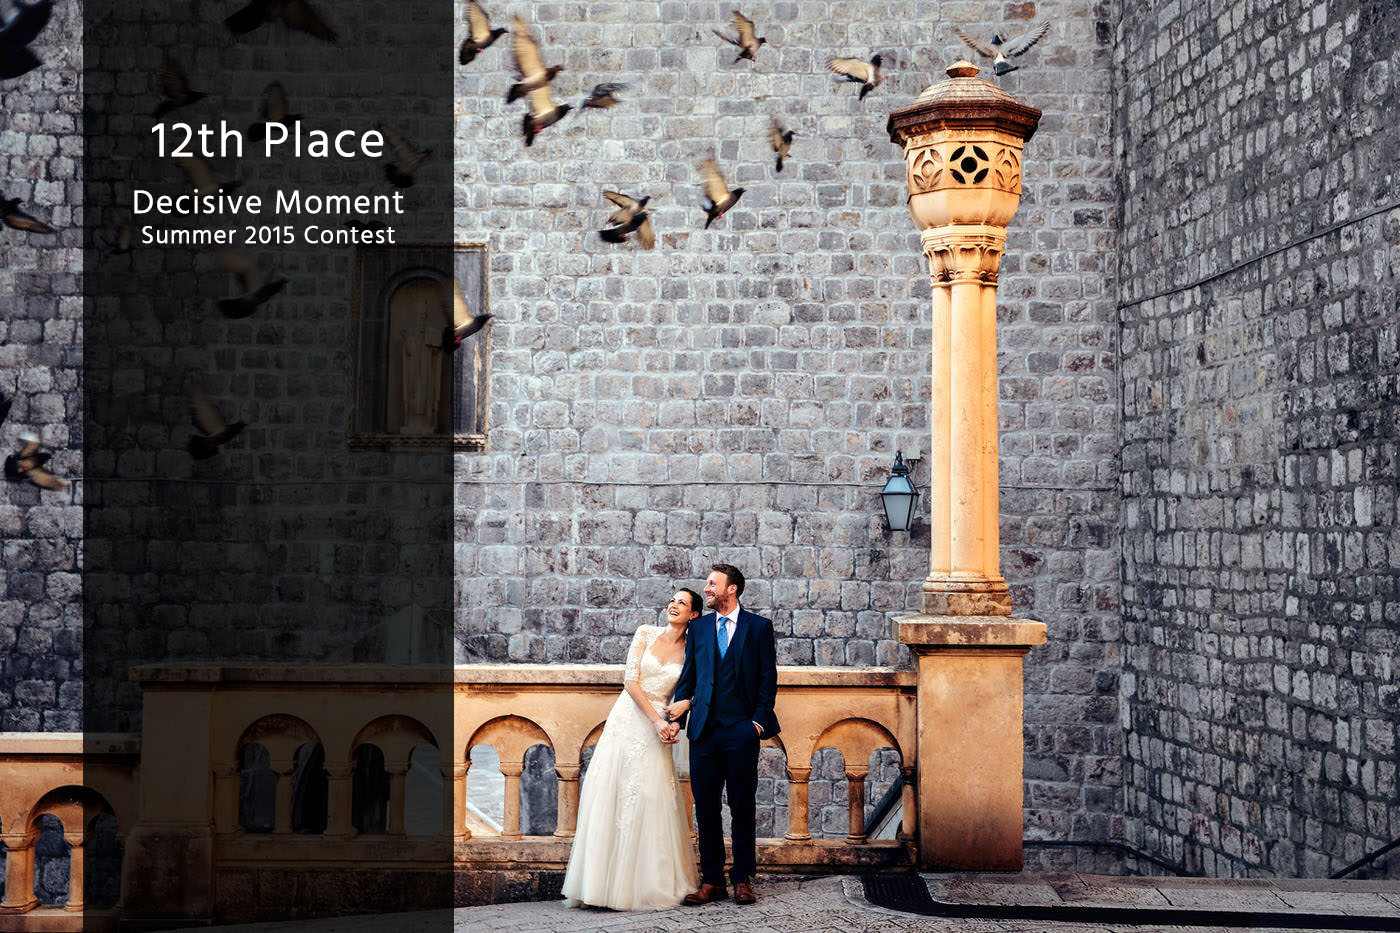 award-winning-wedding-photos-ispwp-fearless-23